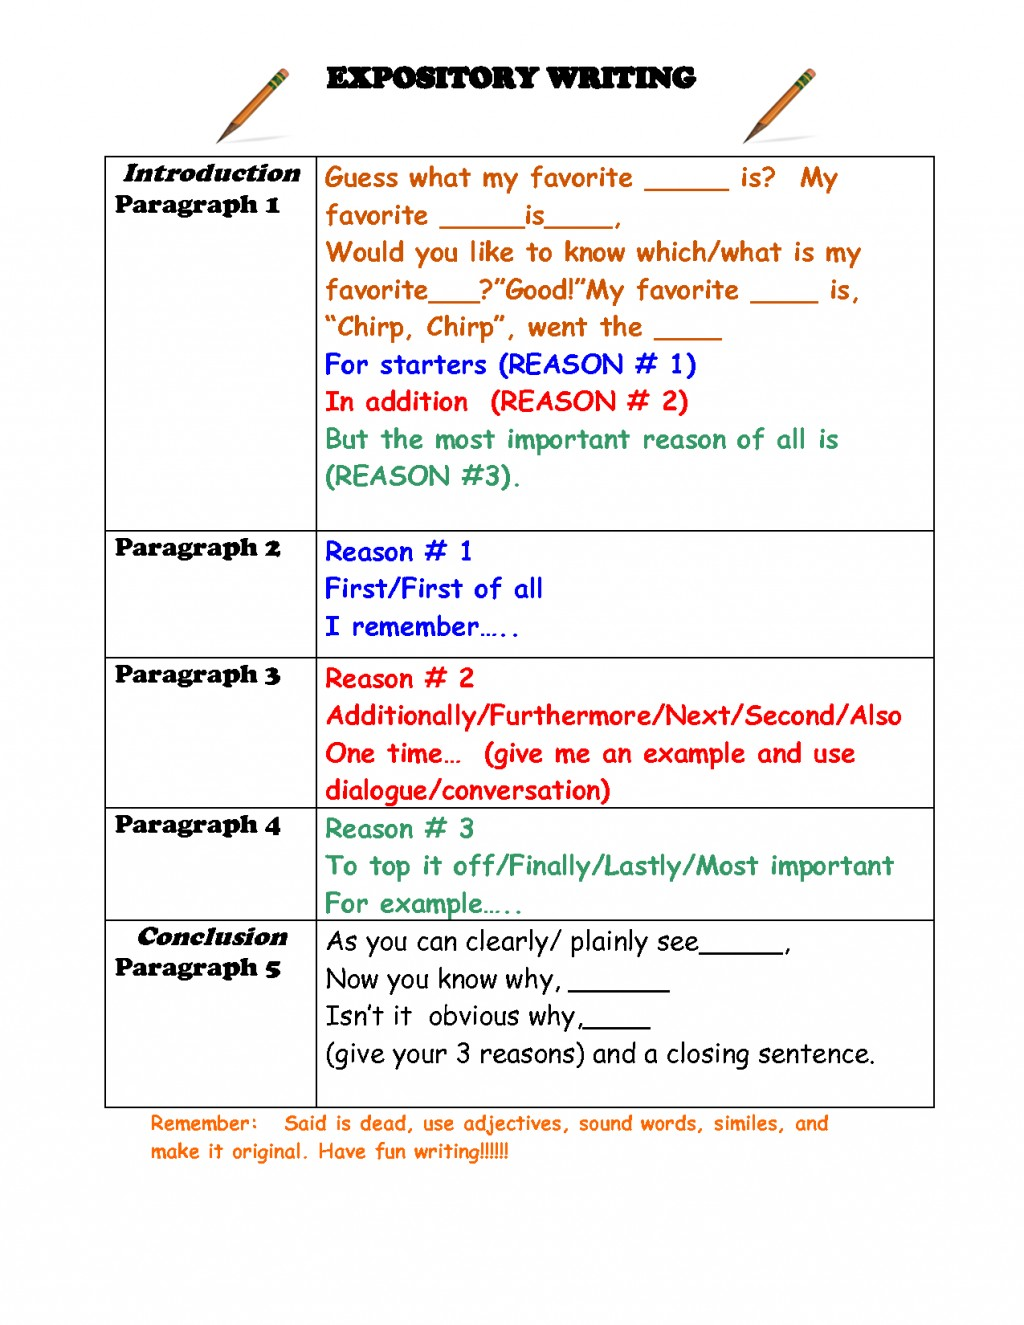 022 Essay Example Paragraph Writing Prompts Middle Incredible 5 School Large